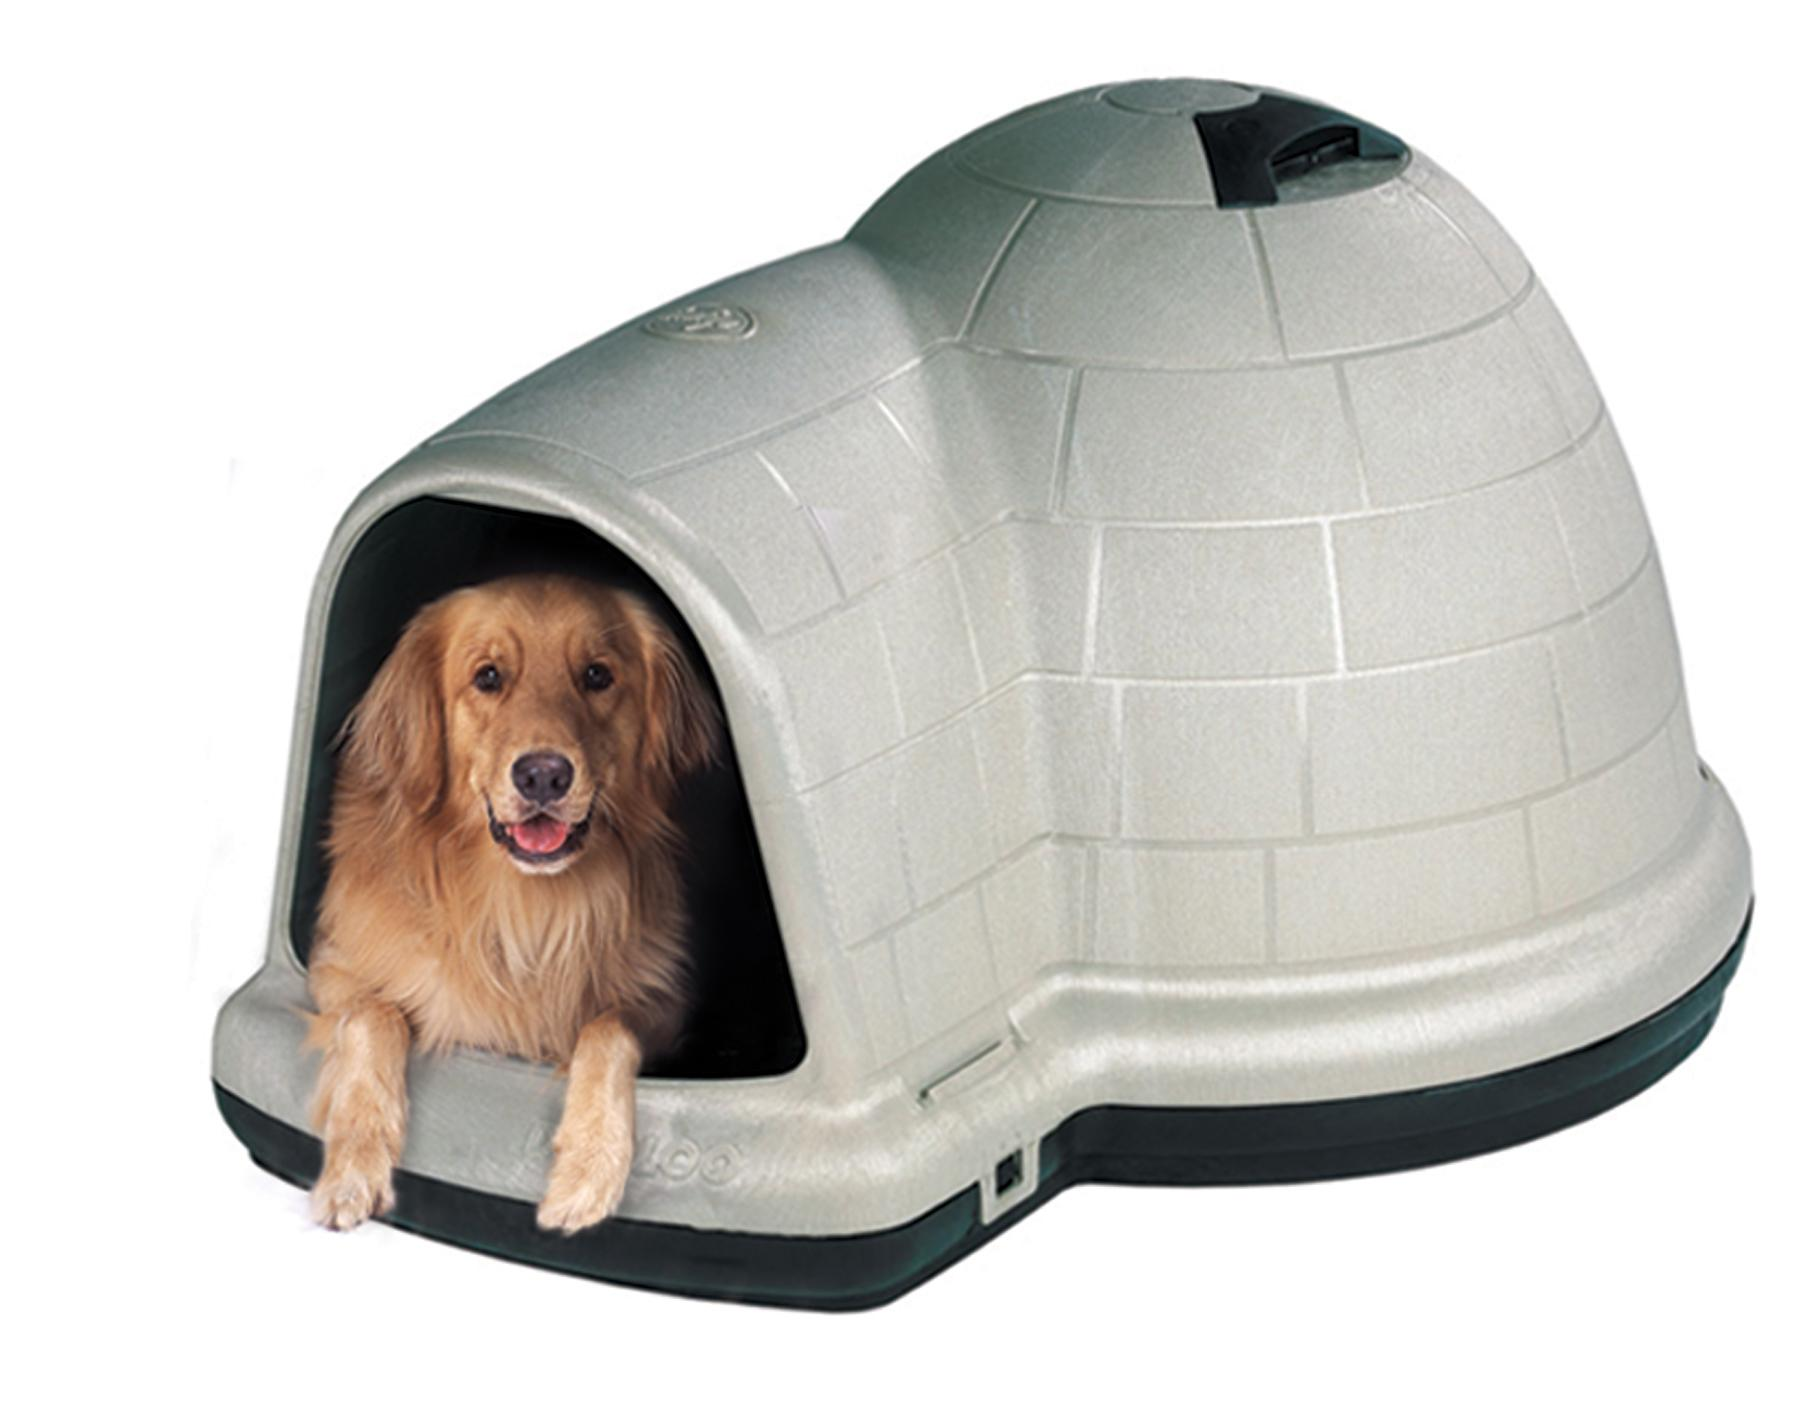 Petmate indigo igloo dog house review doggy savvy for Petmate dog house large